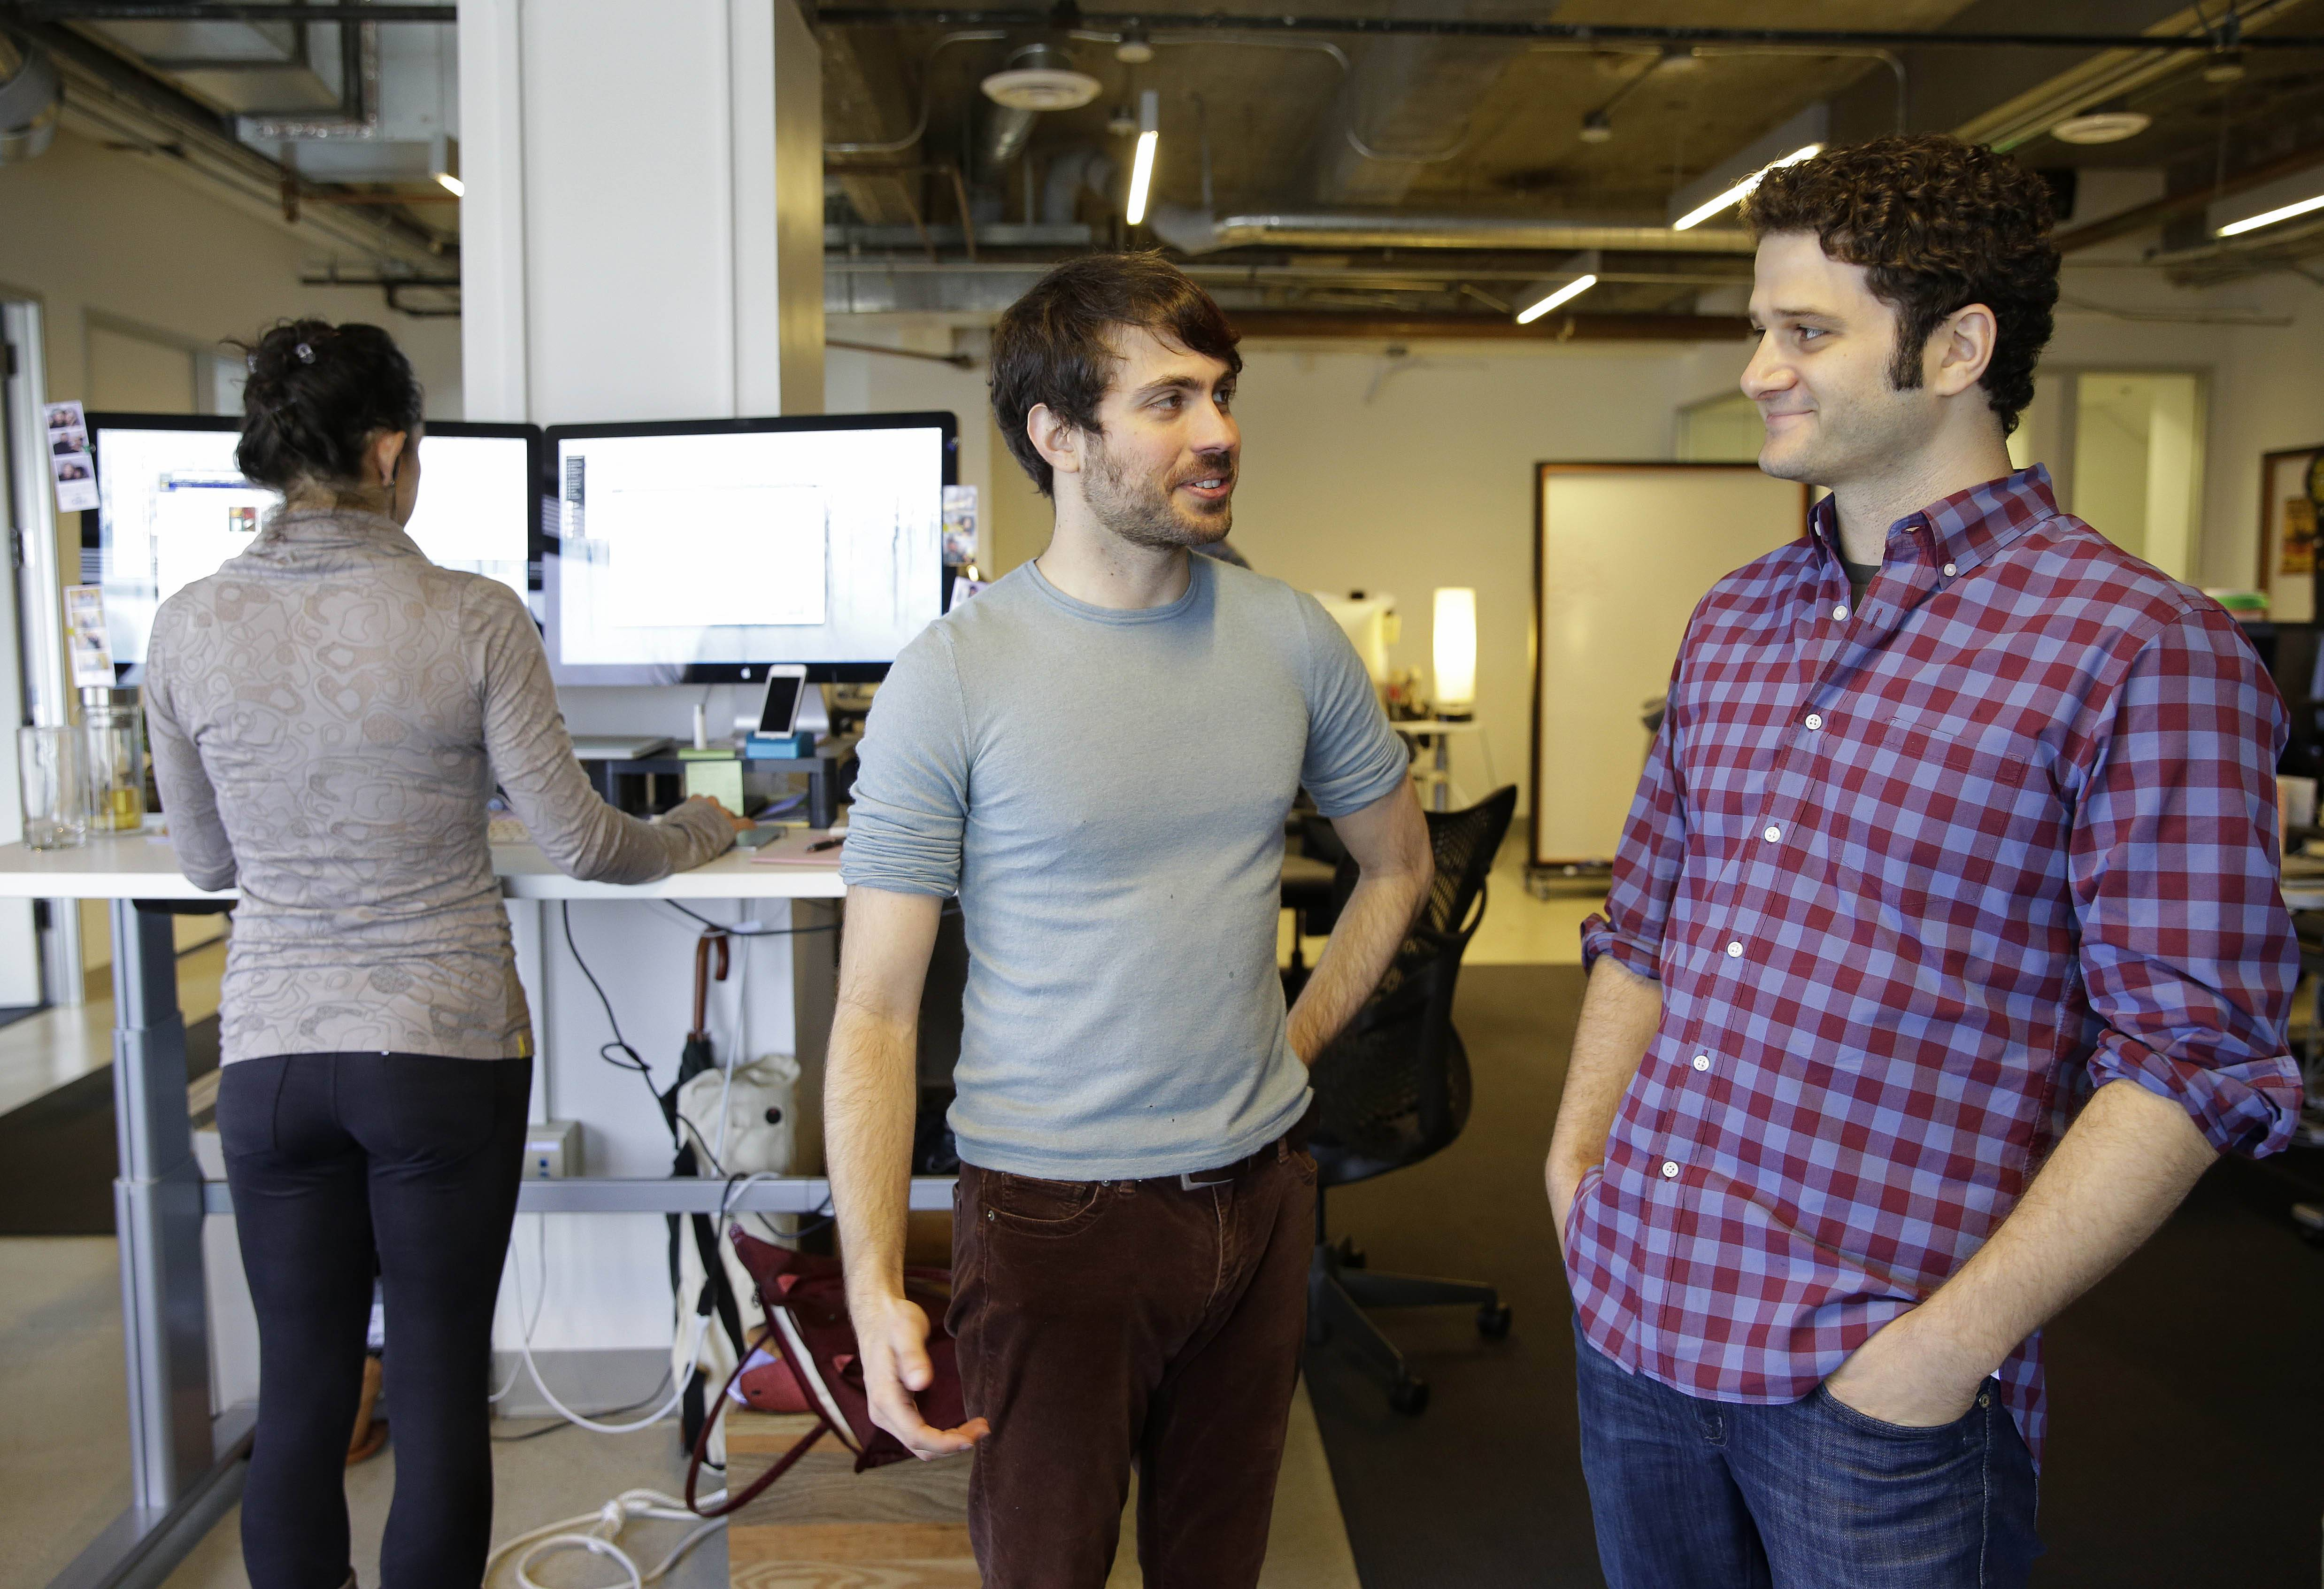 Asana co-founders Justin Rosenstein, center, and Dustin Moskovitz, right, at the company's headquarters in San Francisco.